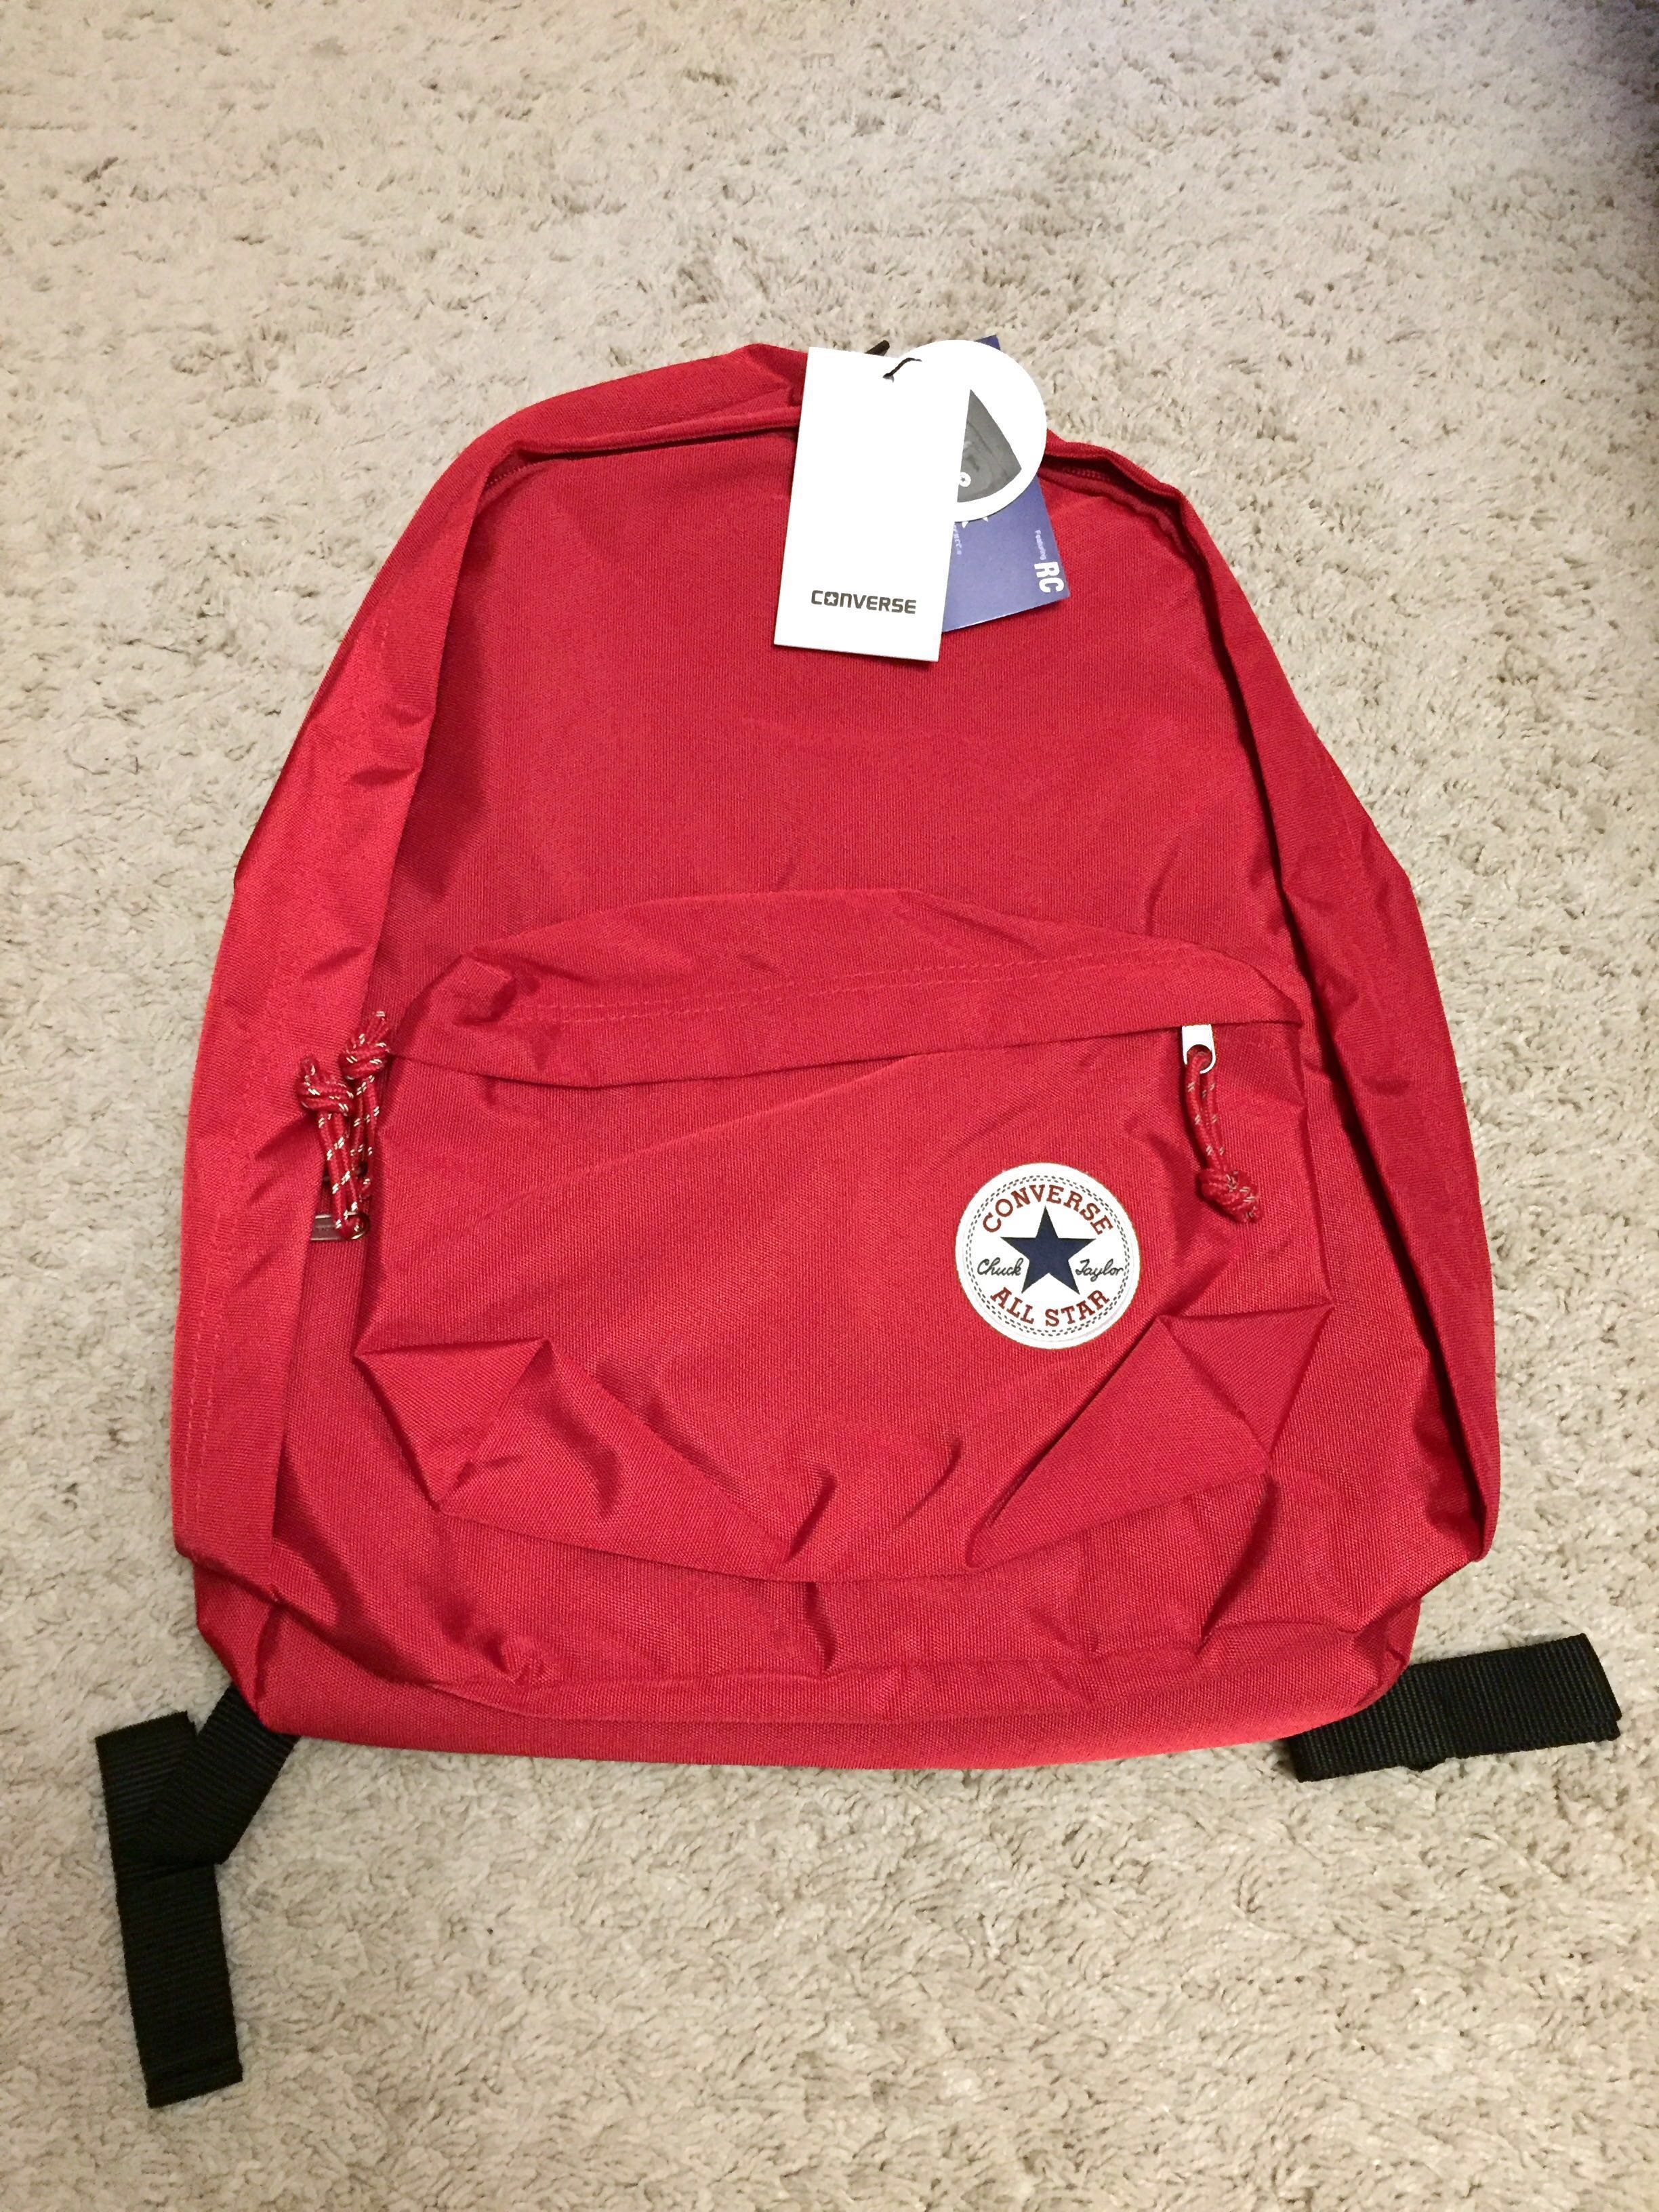 29d84e7060 Authentic converse backpacks (red and navy blue)